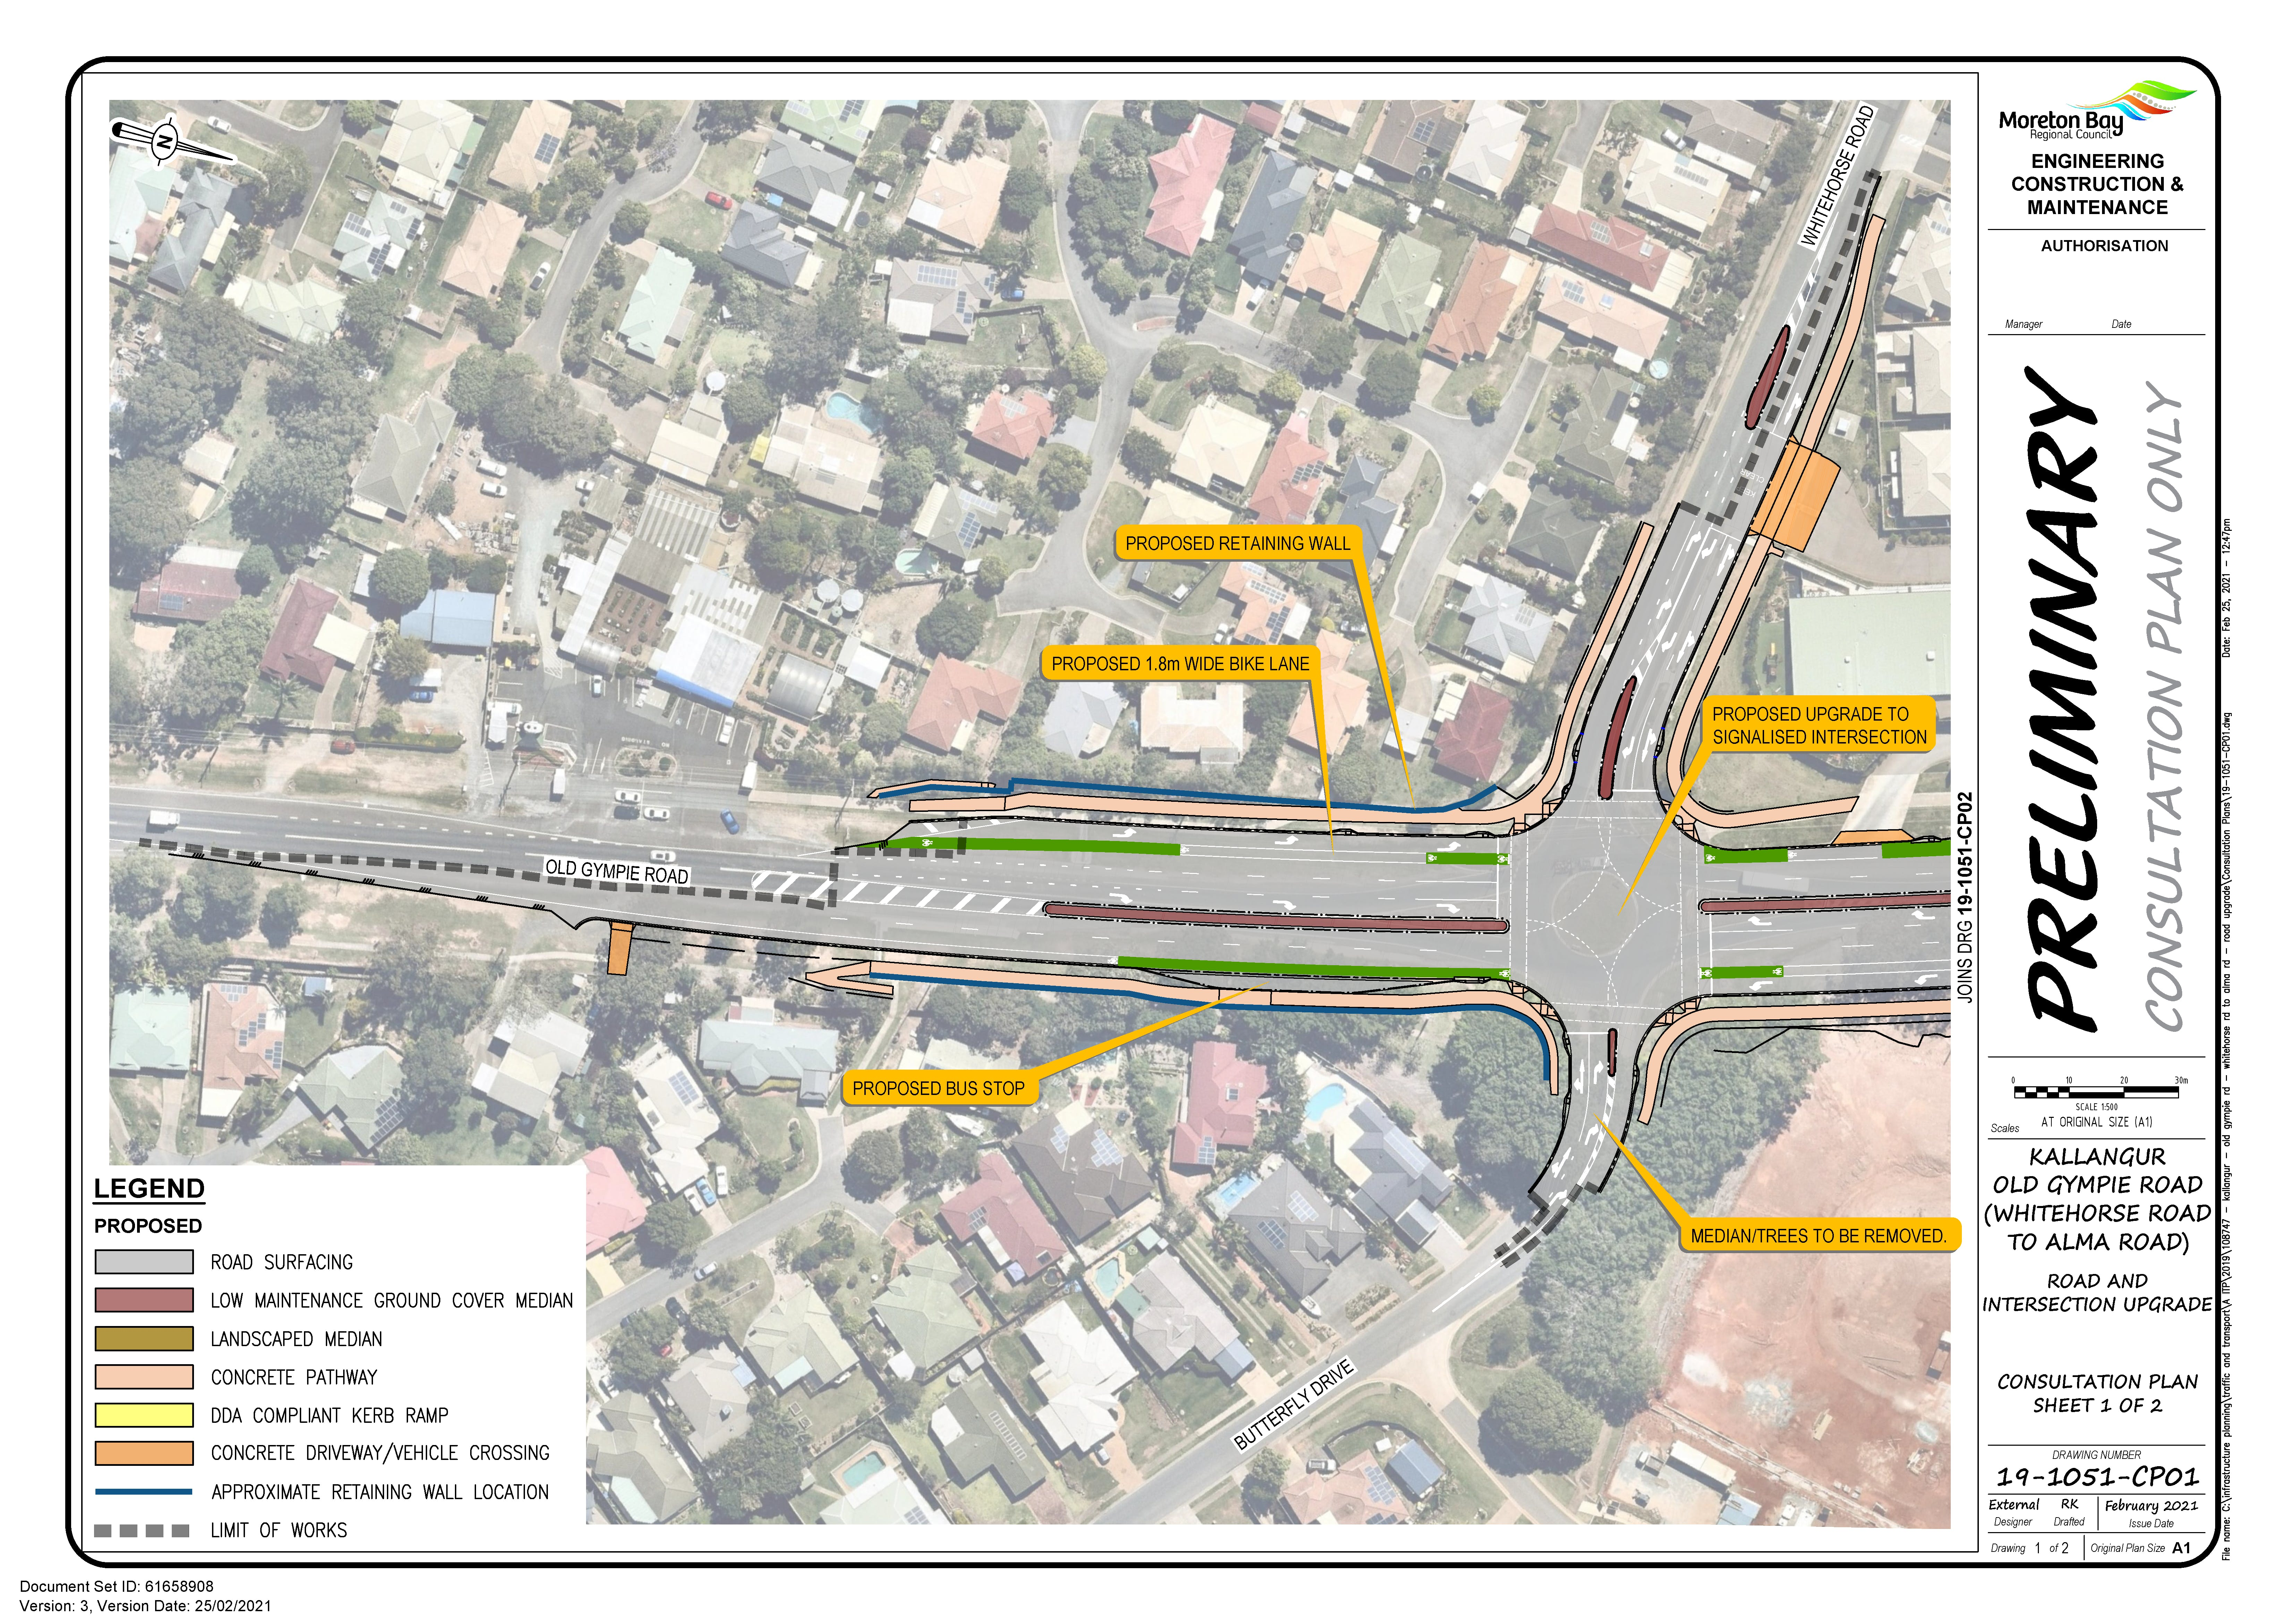 Concept Design - Old Gympie Road Whitehorse Road to Alma Road Upgrade_Page_1.png